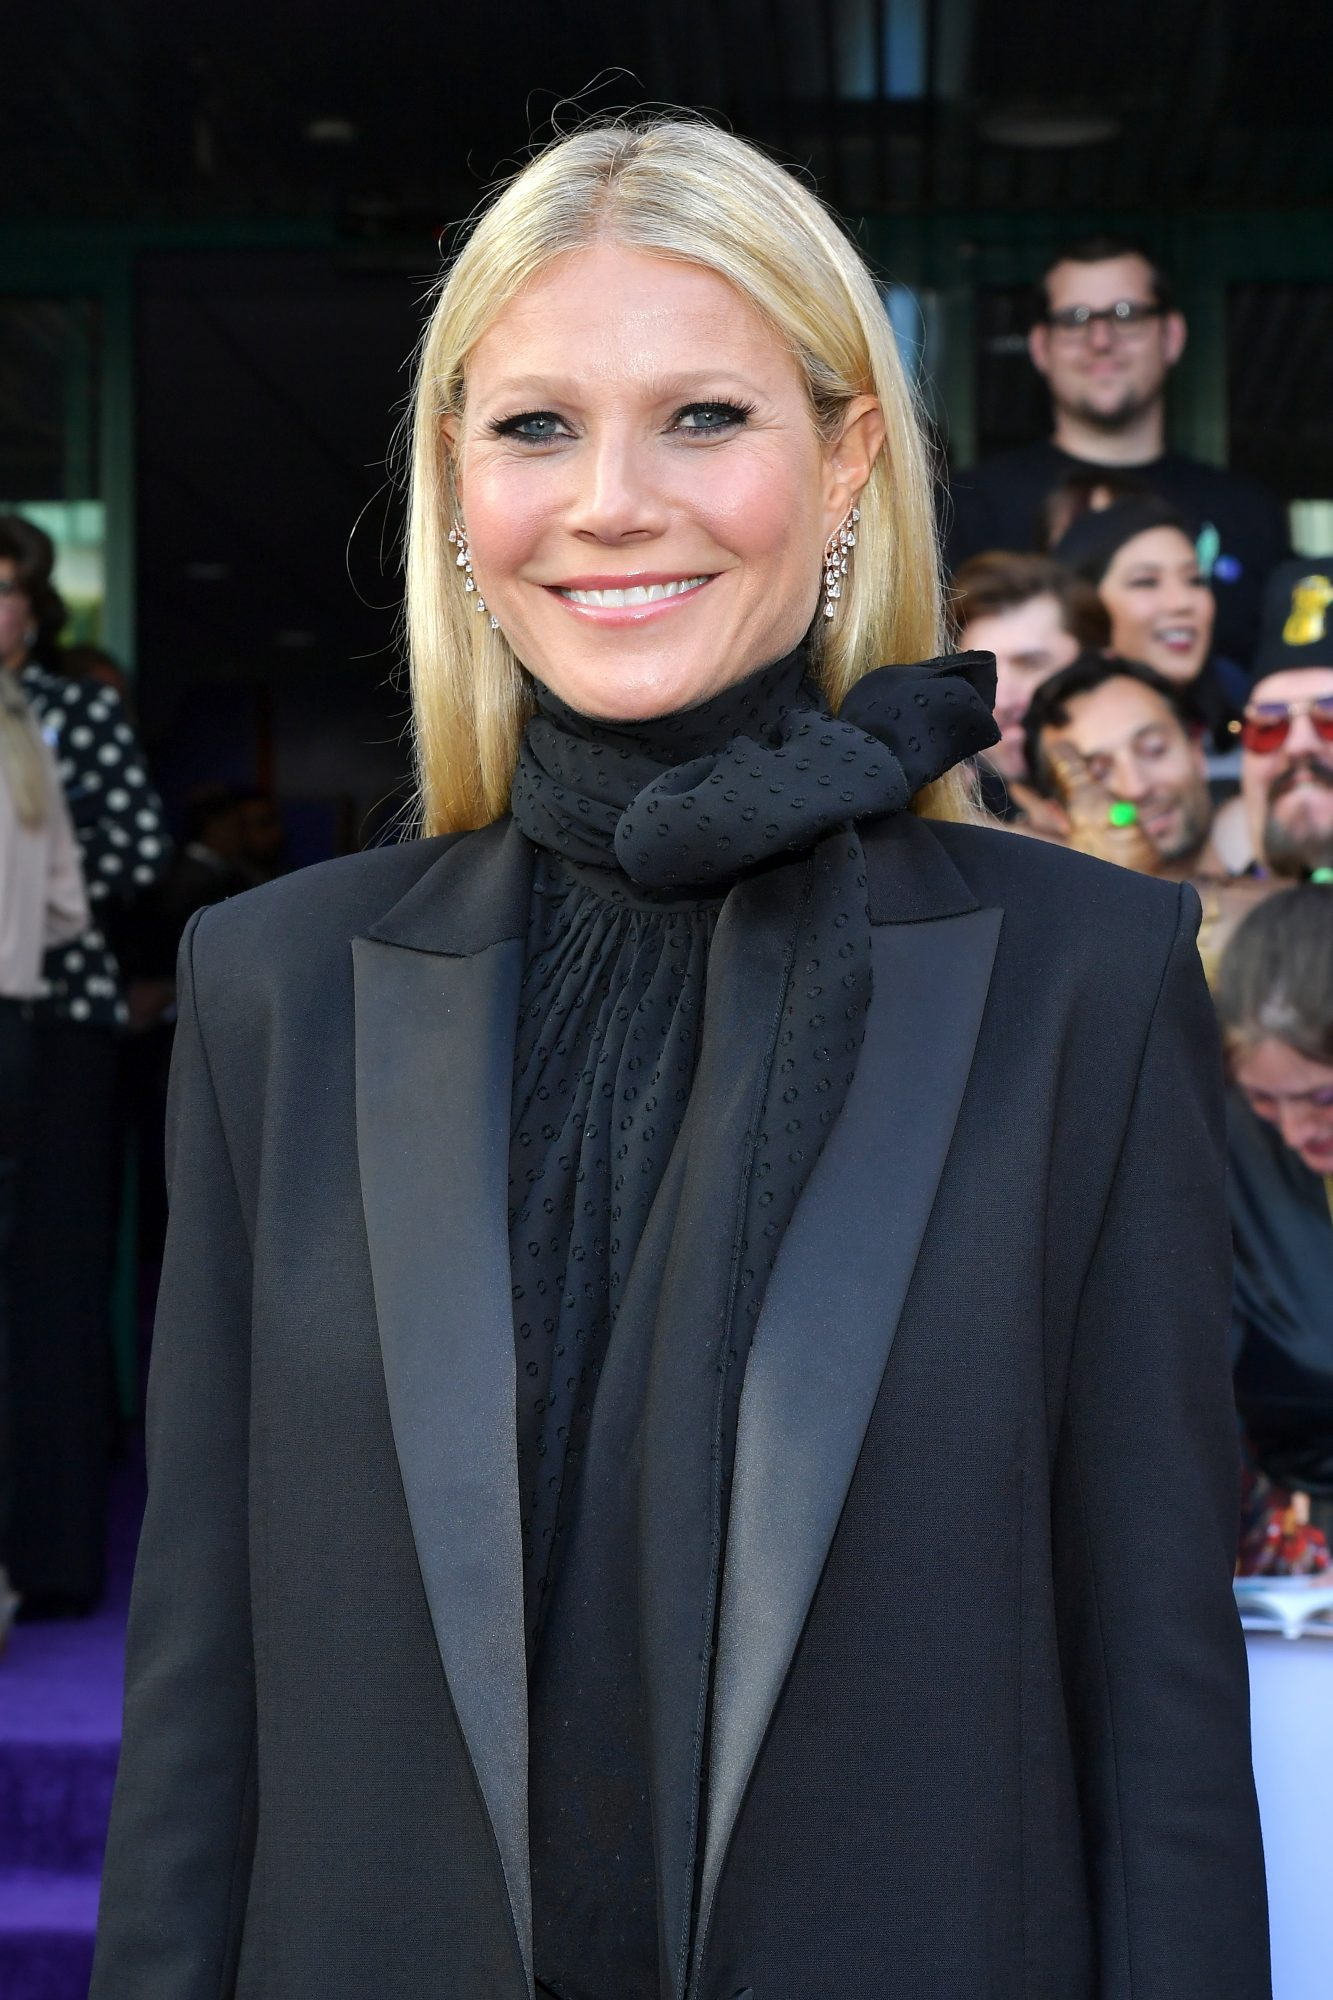 """Gwyneth Paltrow attends the world premiere of Walt Disney Studios Motion Pictures """"Avengers: Endgame"""" at the Los Angeles Convention Center on April 22, 2019 in Los Angeles, California. (Photo by Amy Sussman/Getty Images)"""